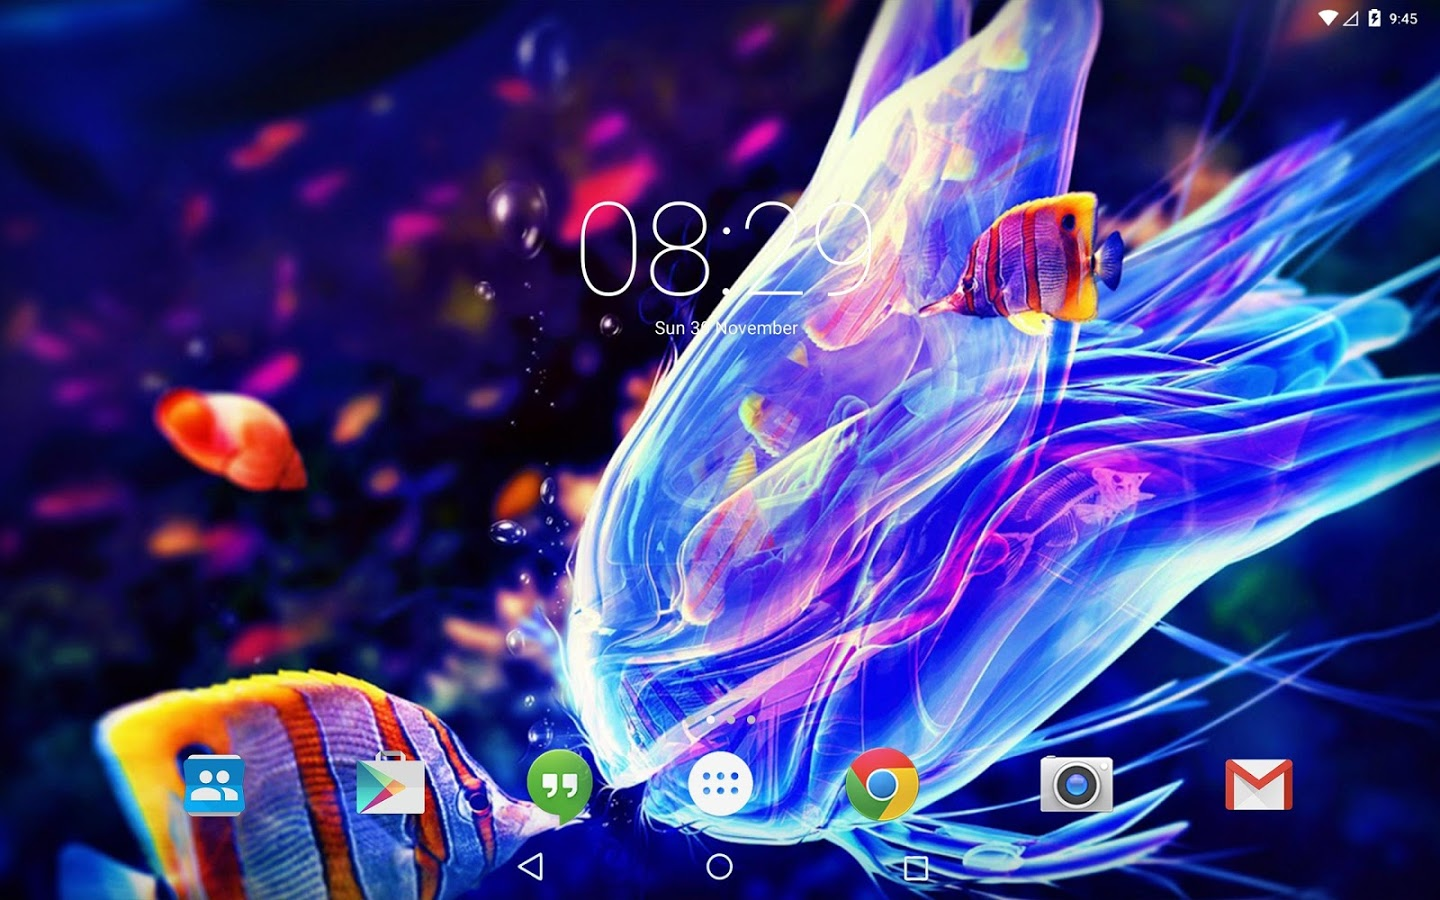 3d Effect Live Wallpaper Android Apk Jellyfish Medusa Live Wallpaper 187 Apk Thing Android Apps